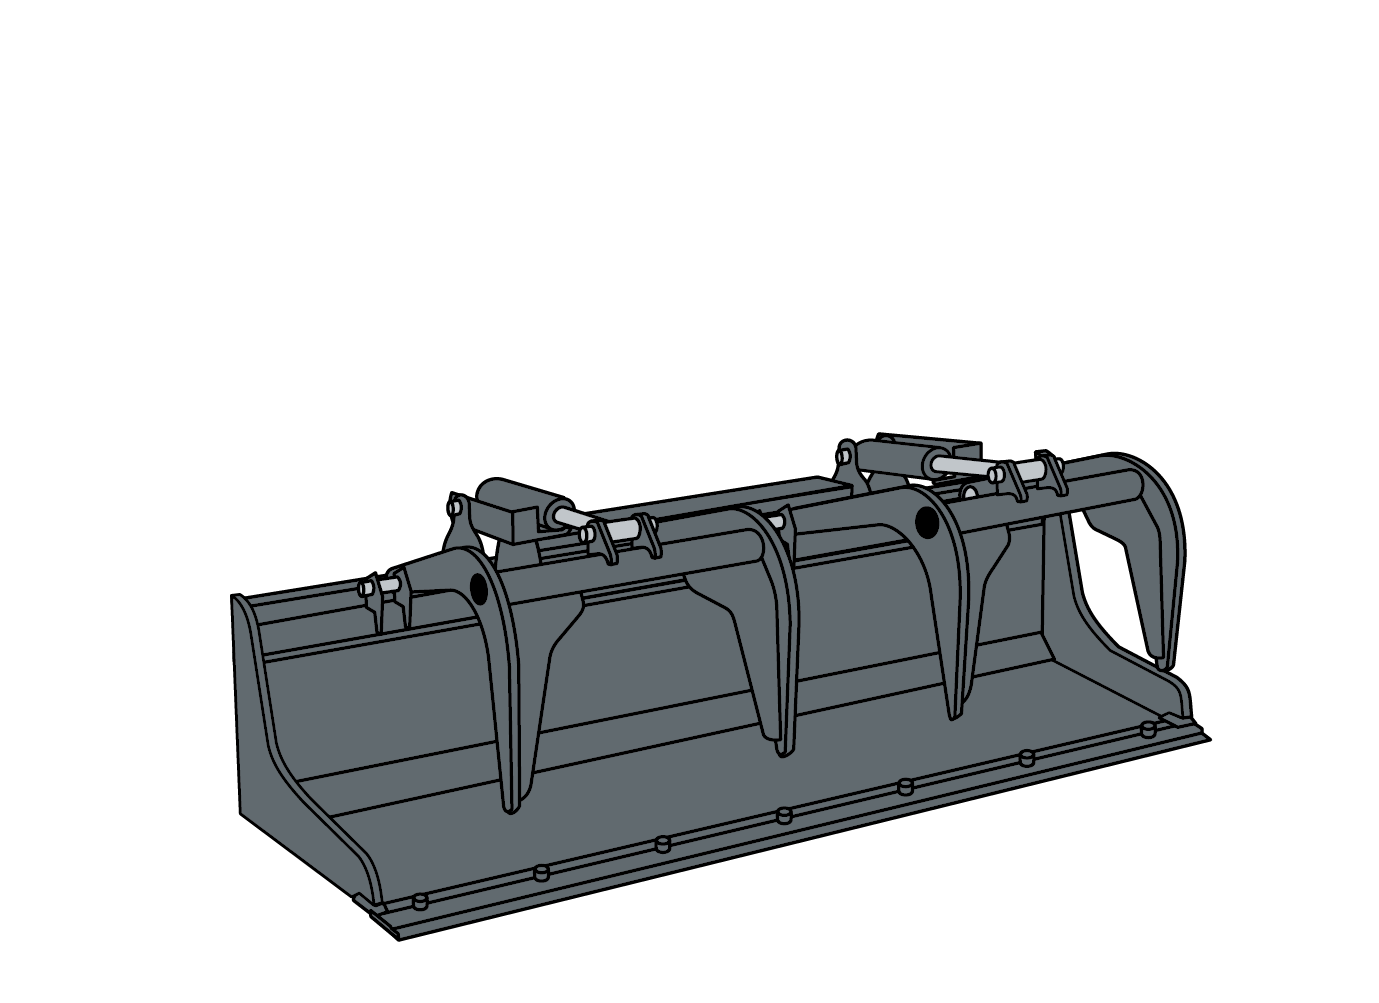 SCRAP GRAPPLE illustration